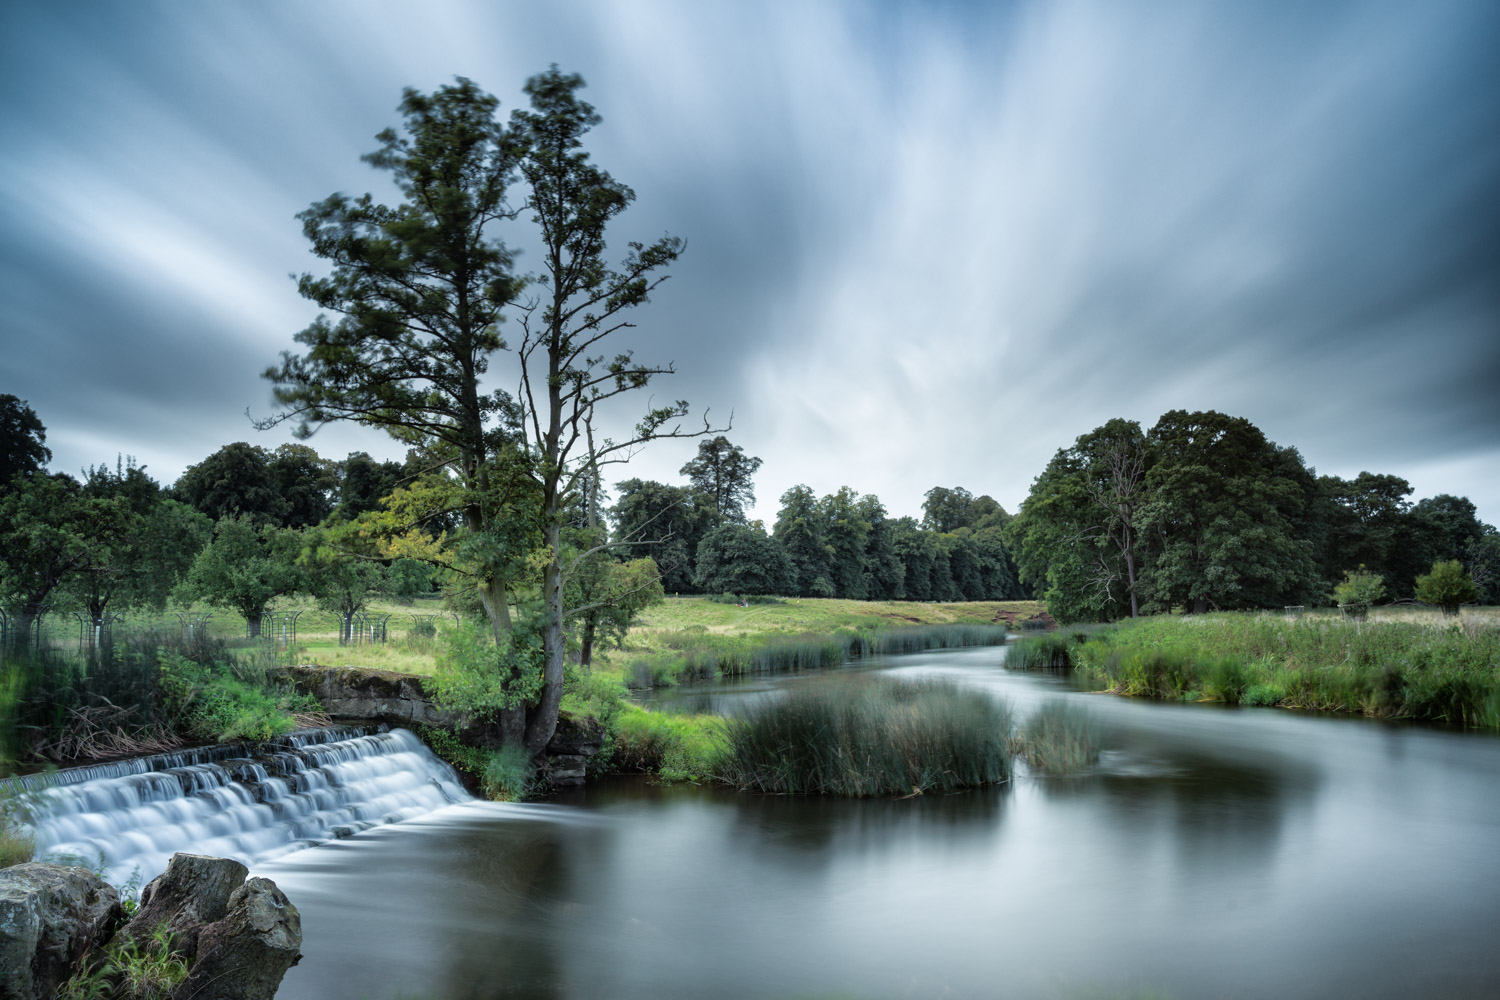 charlecote - using a 10 stop neutral density filter